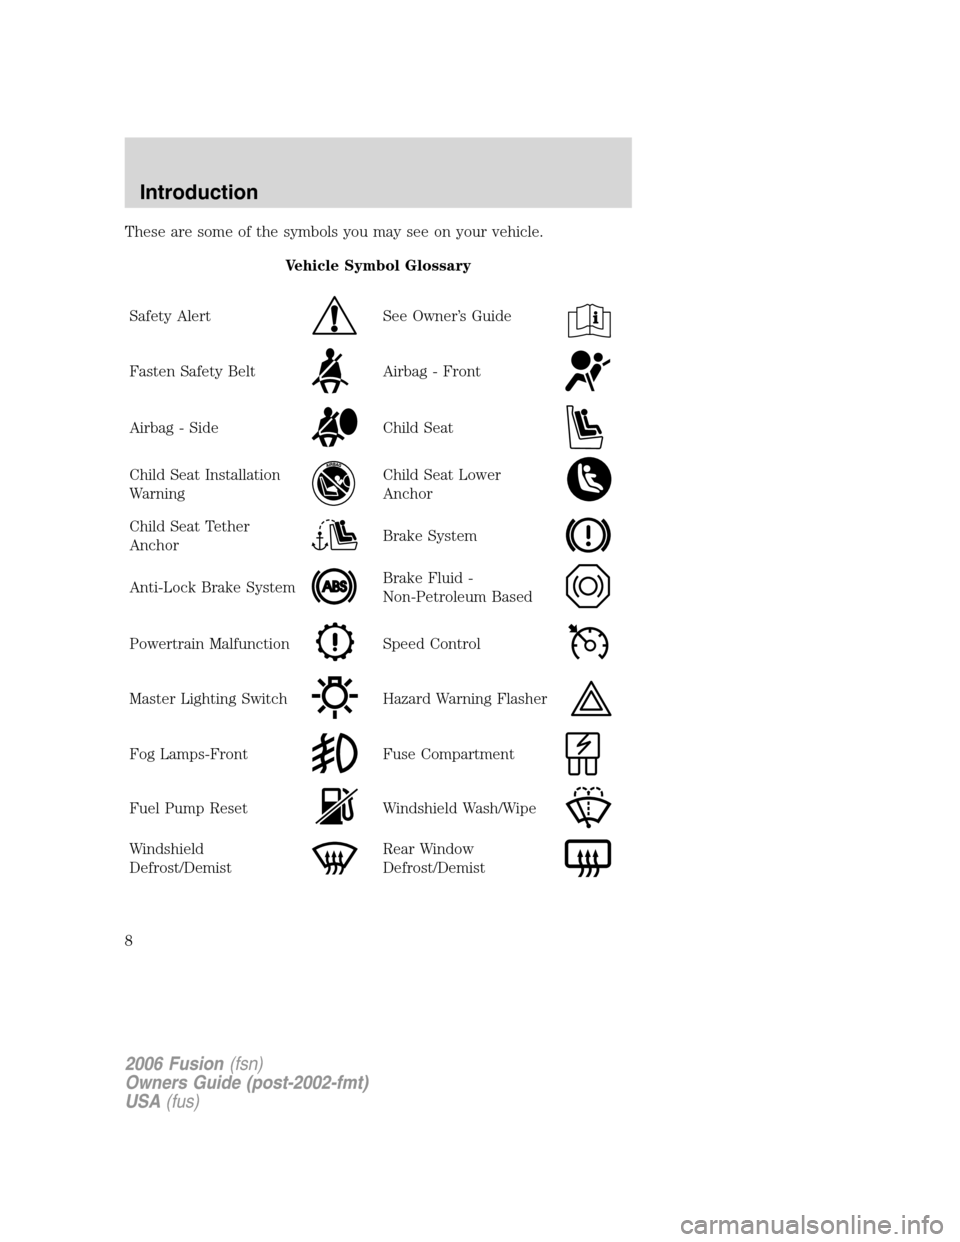 FORD FUSION (AMERICAS) 2006 1.G Owners Manual, Page 8